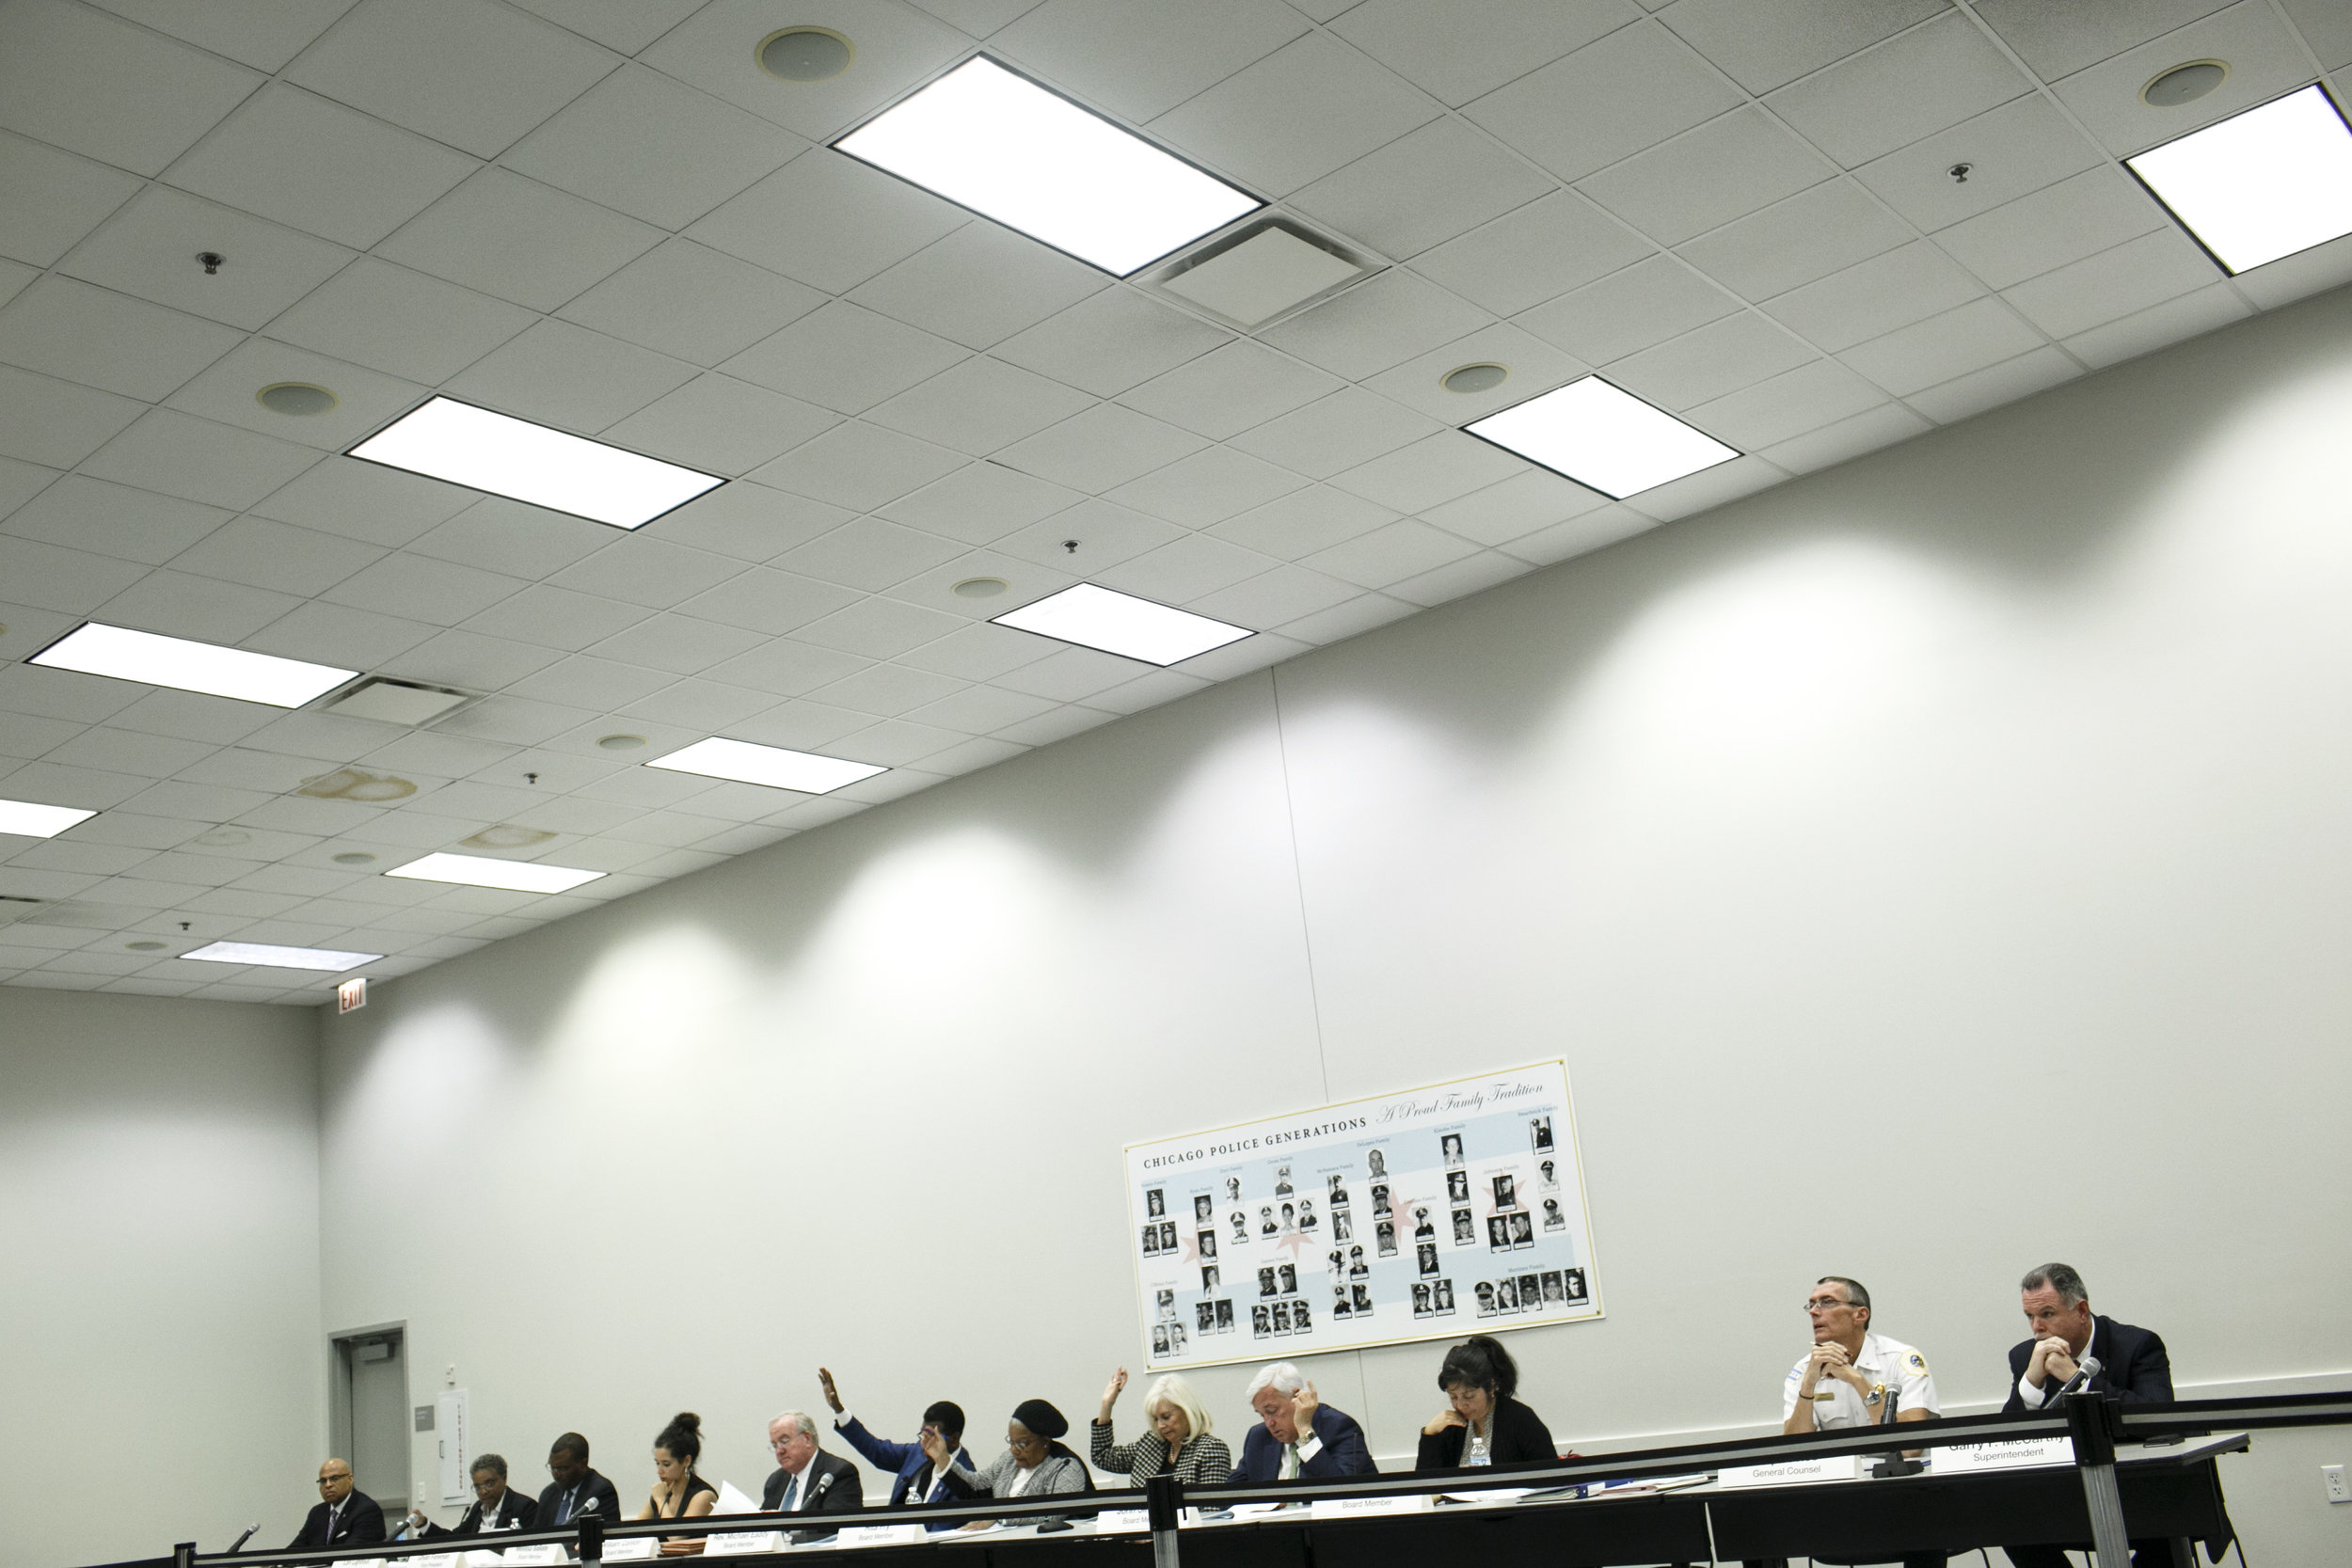 The Board votes during the November Police Board Meeting at the Chicago Public Safety Headquarters on November 19, 2015. Photo by Jonathan Gibby